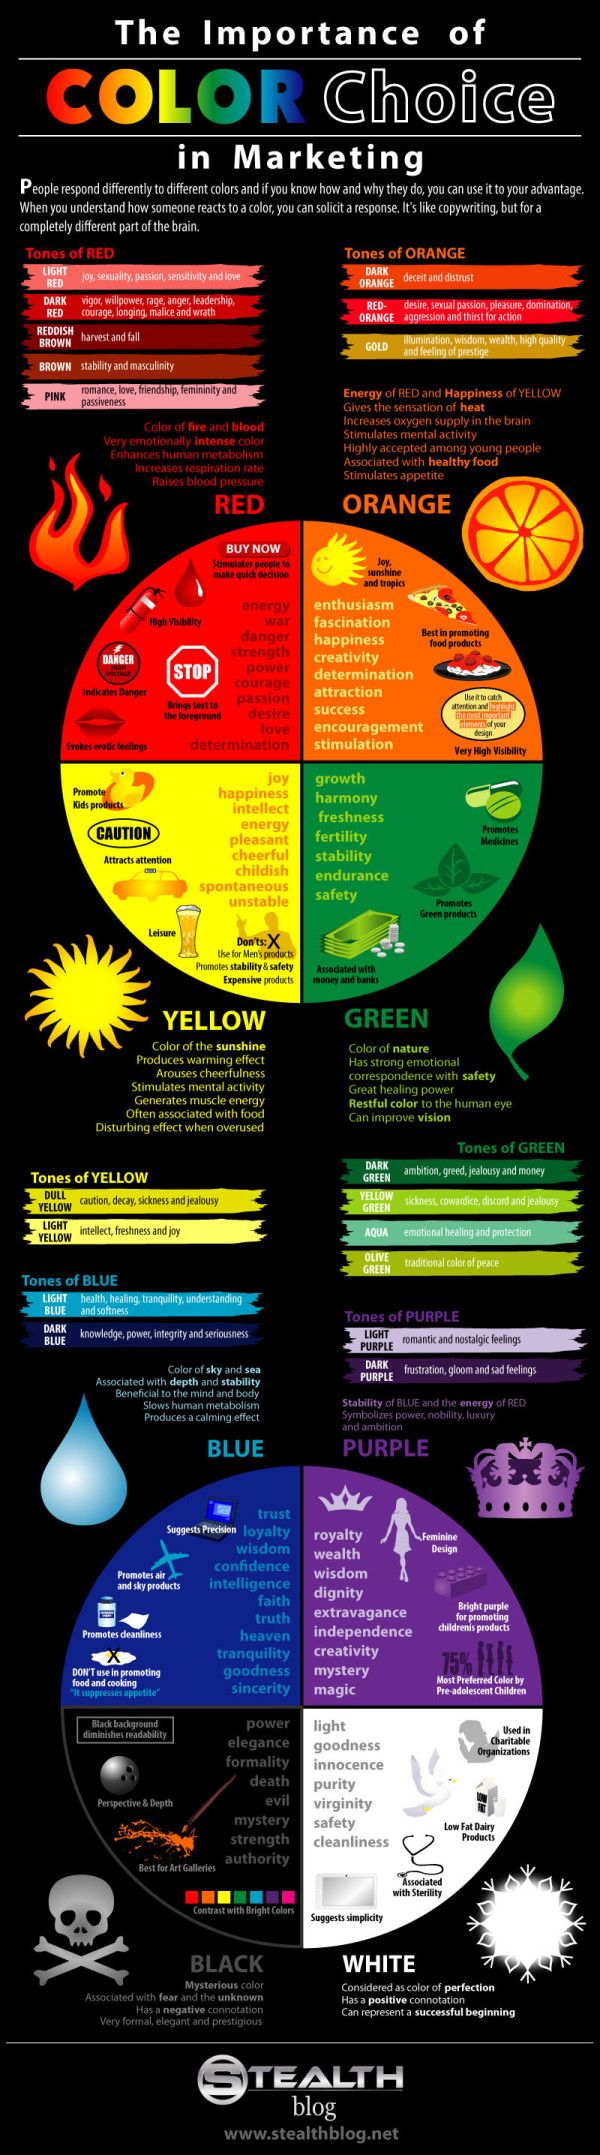 Psychology Of Colors In Marketing Marketing Pinterest